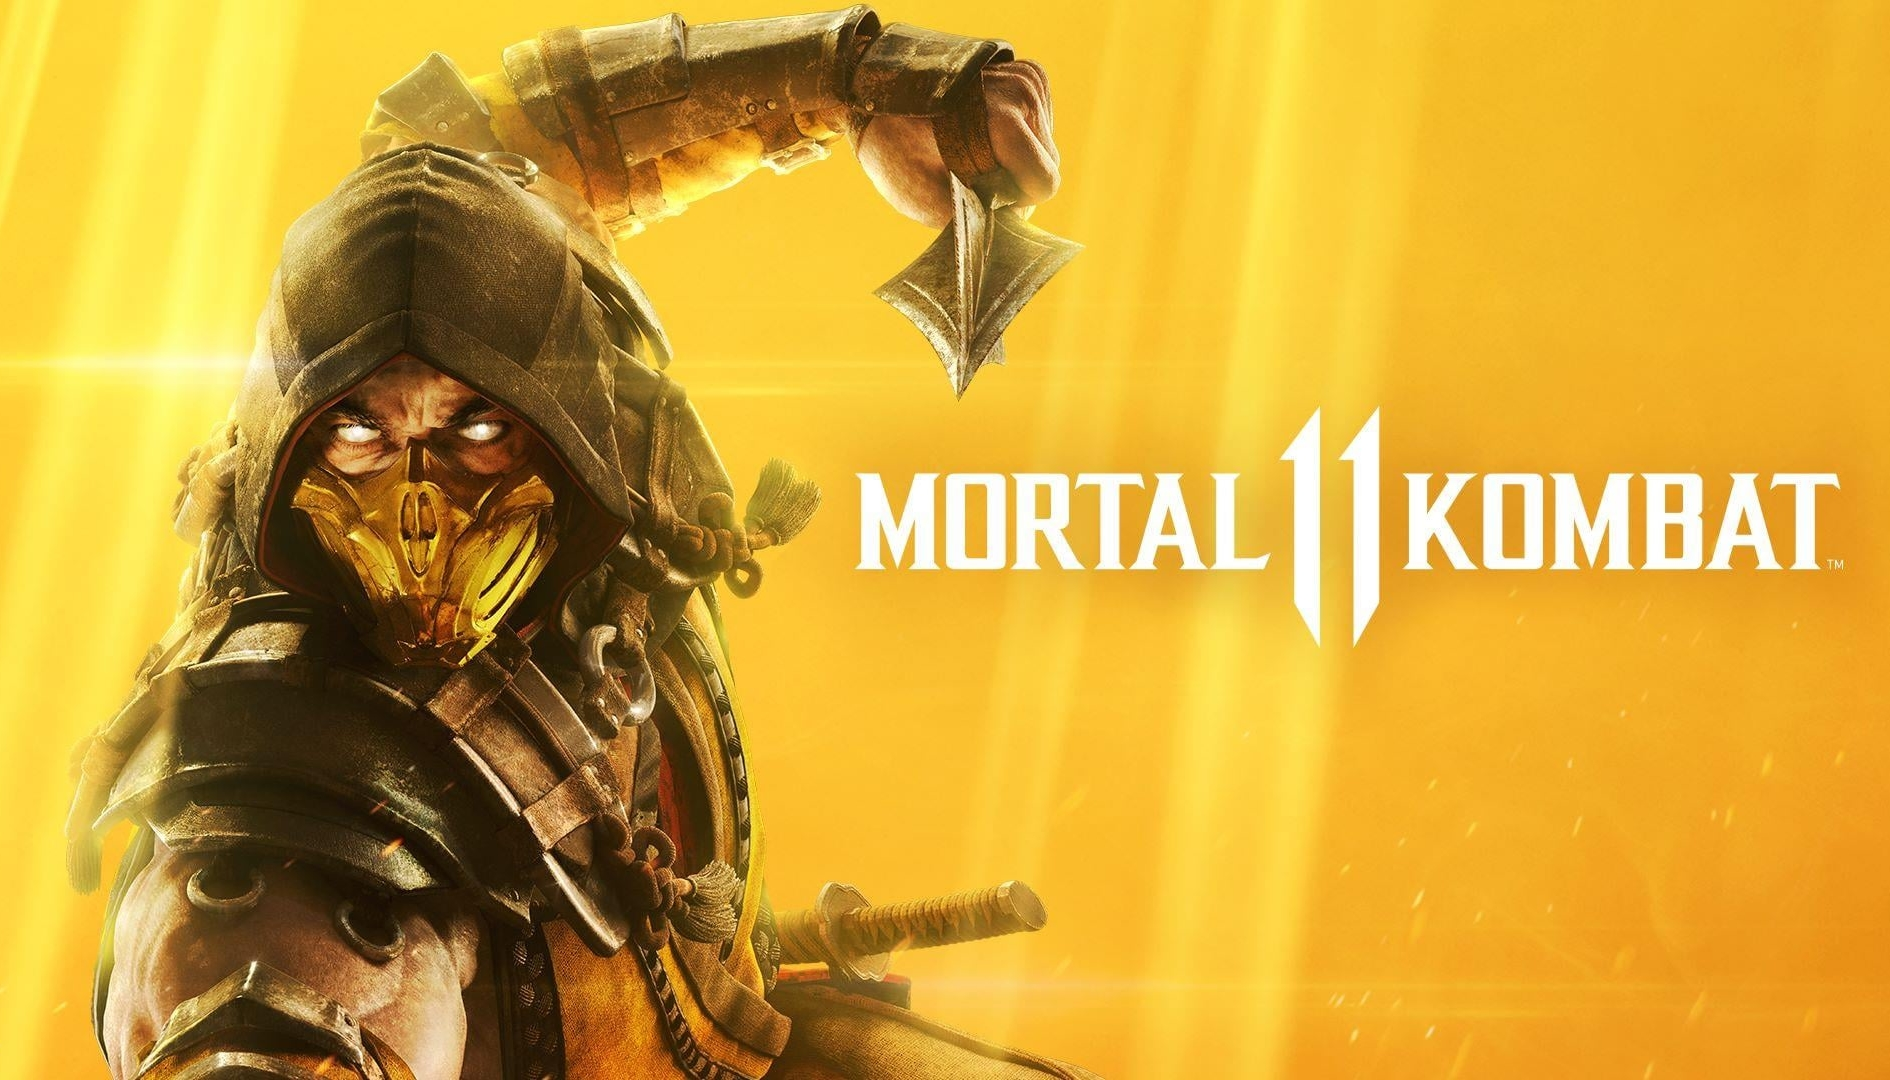 Mortal Kombat 11 primo gioco third party a sfruttare il boost mode di Switch